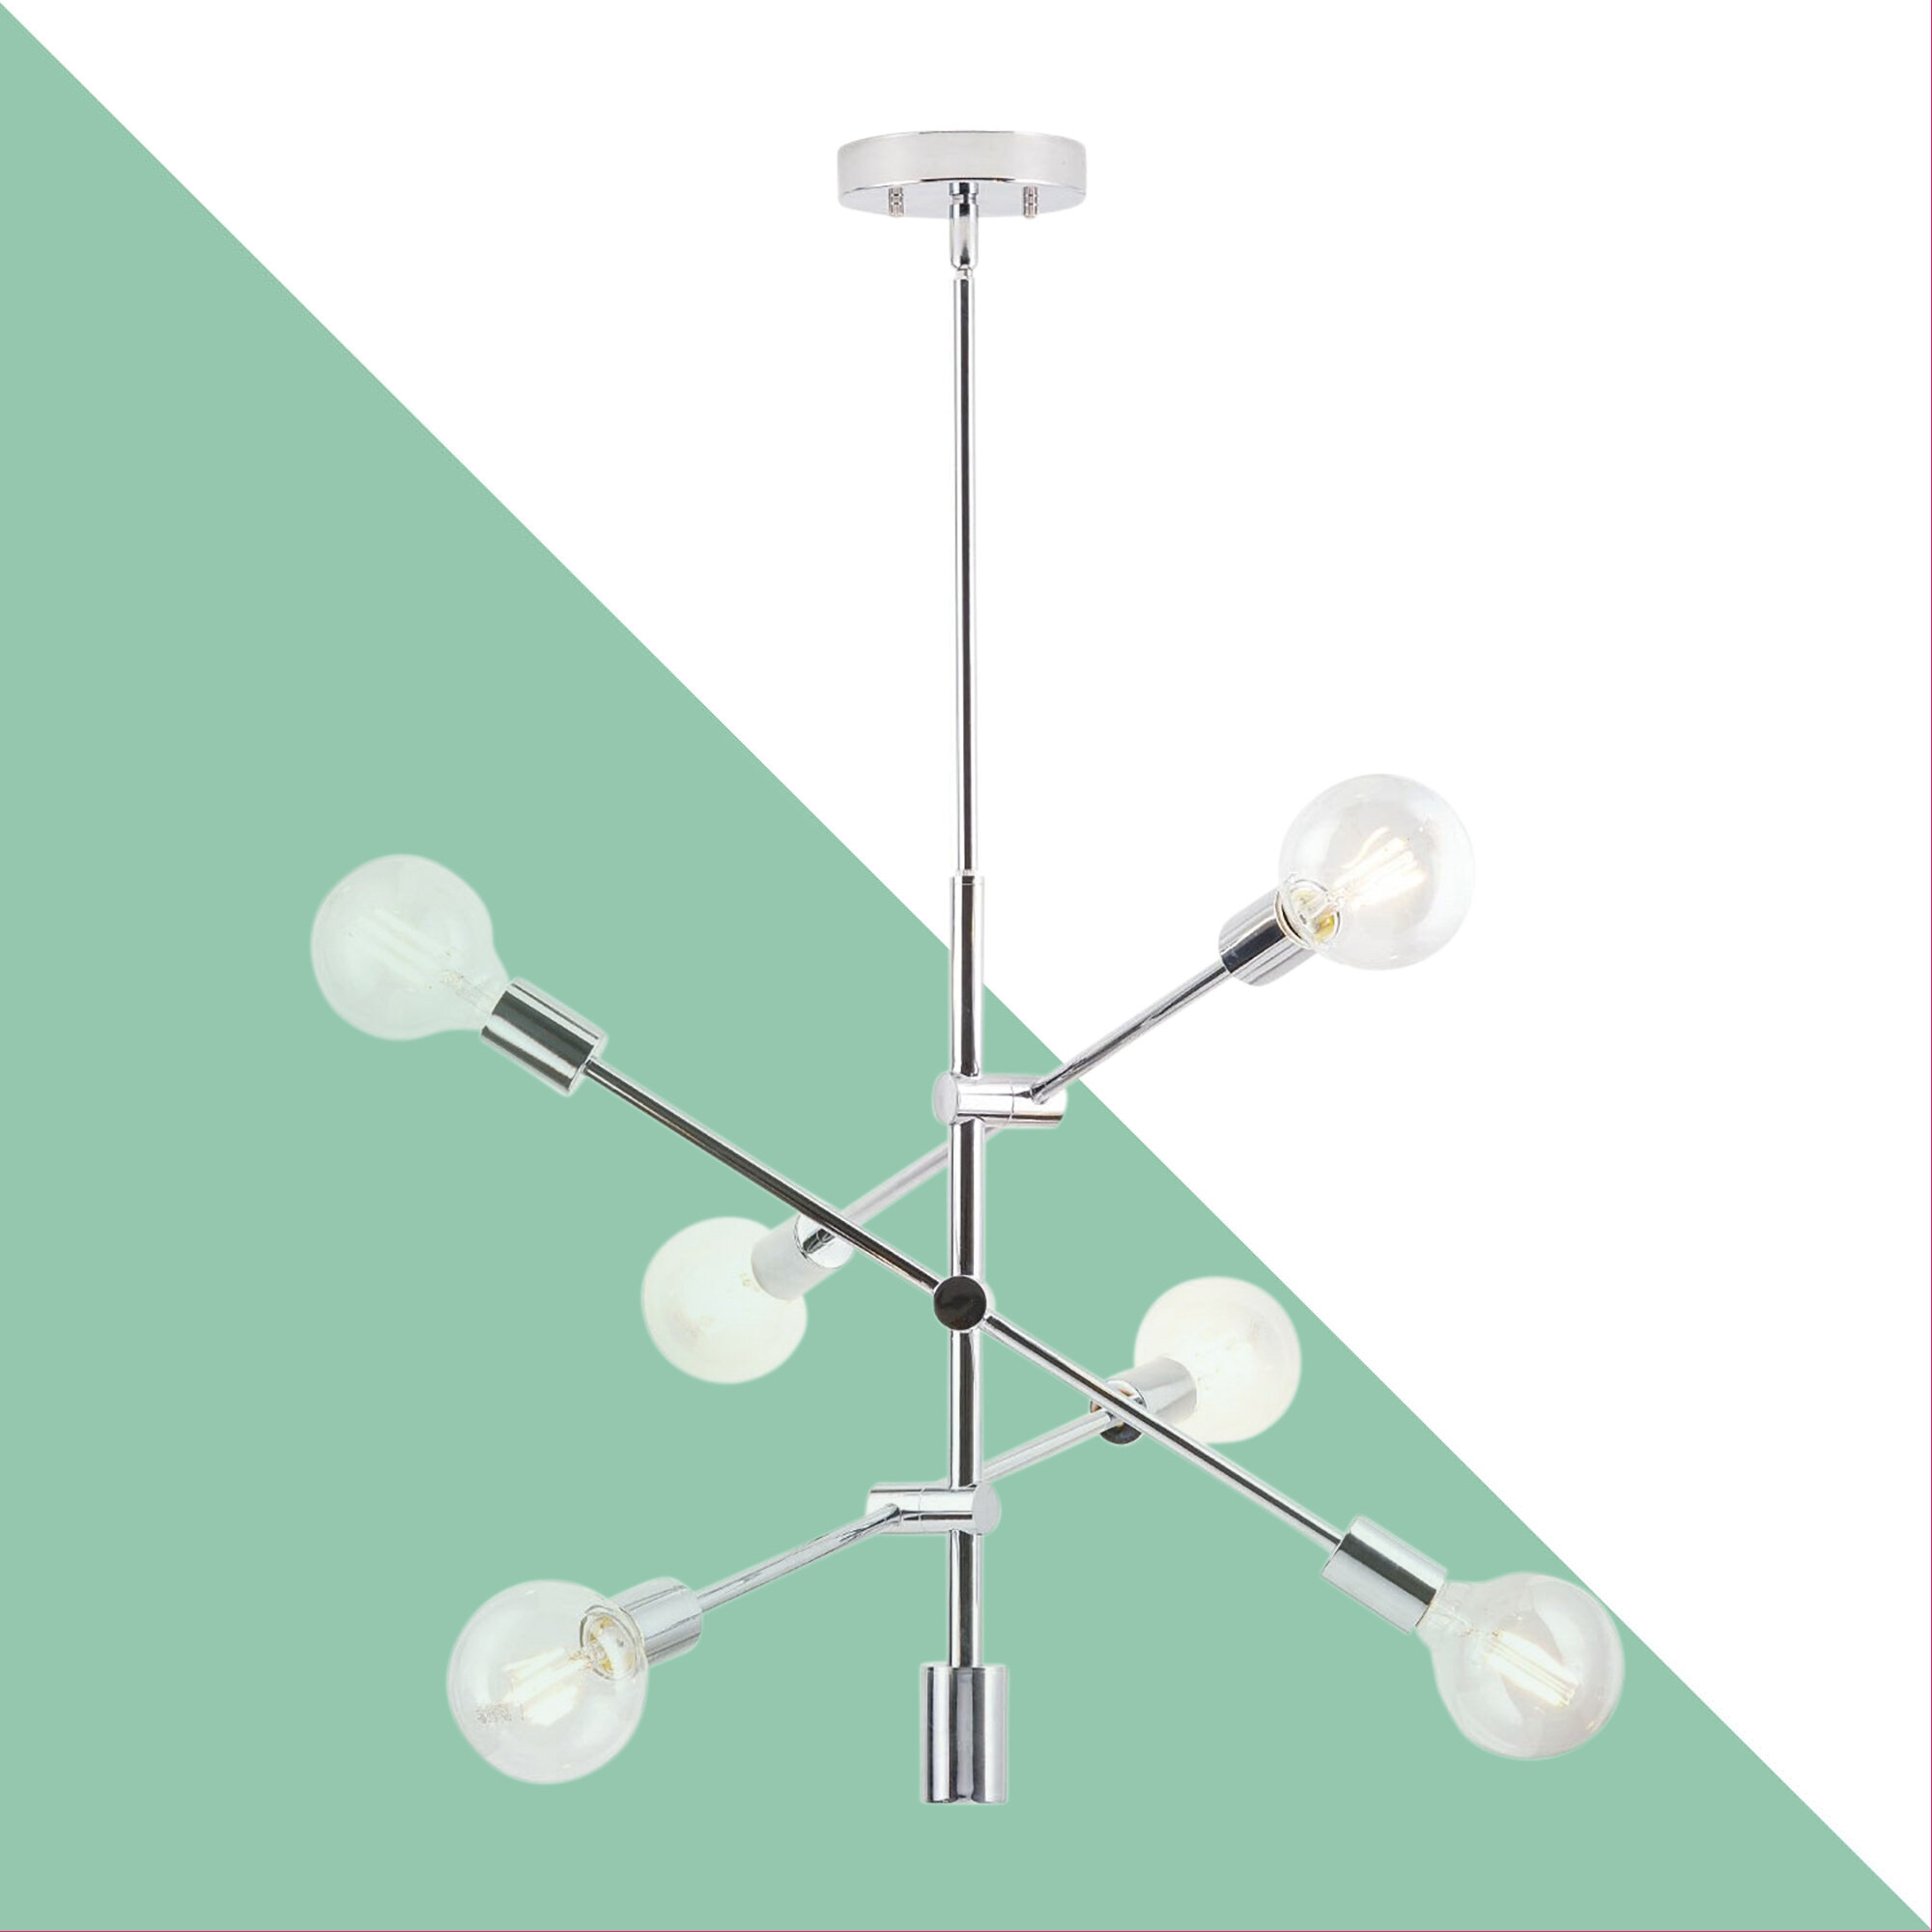 Eladia 6 Light Sputnik Chandelier With Regard To Eladia 6 Light Sputnik Chandeliers (View 3 of 30)